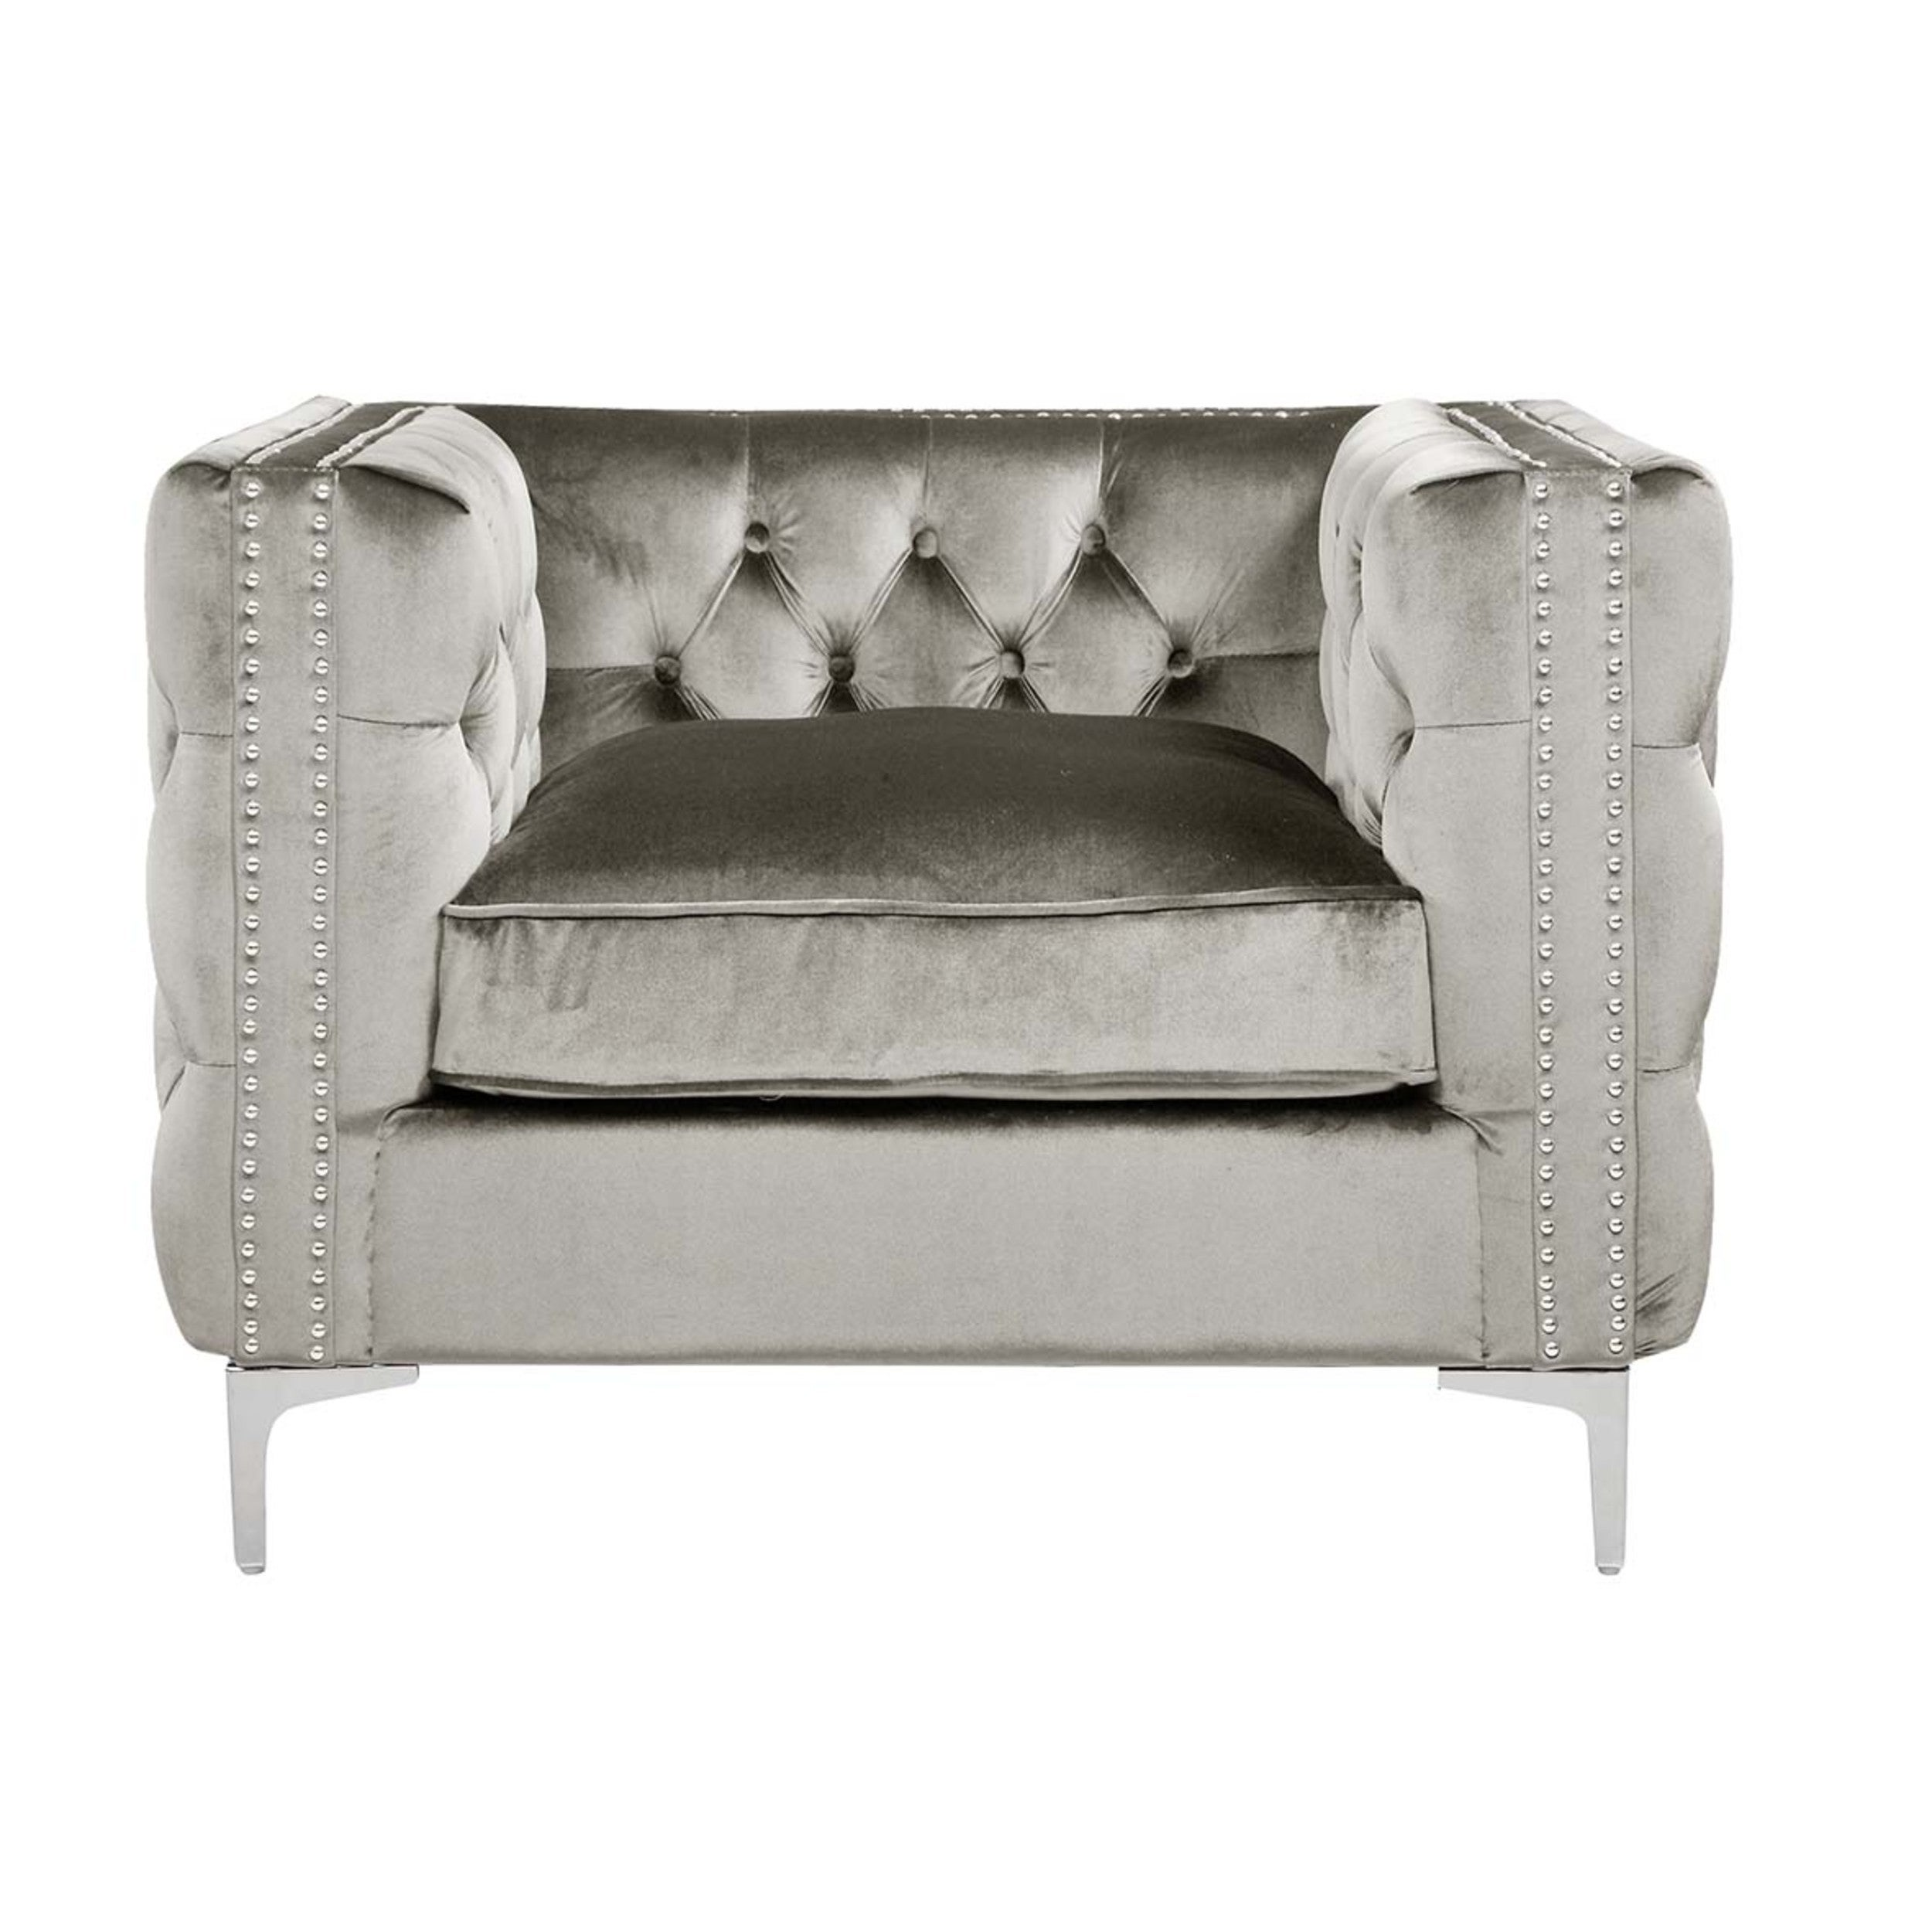 Exceptionnel Shop Chic Home Monet Velvet Modern Contemporary Button Tufted With Silver  Nailhead Trim Silvertone Metal Y Leg Club Chair   On Sale   Free Shipping  Today ...